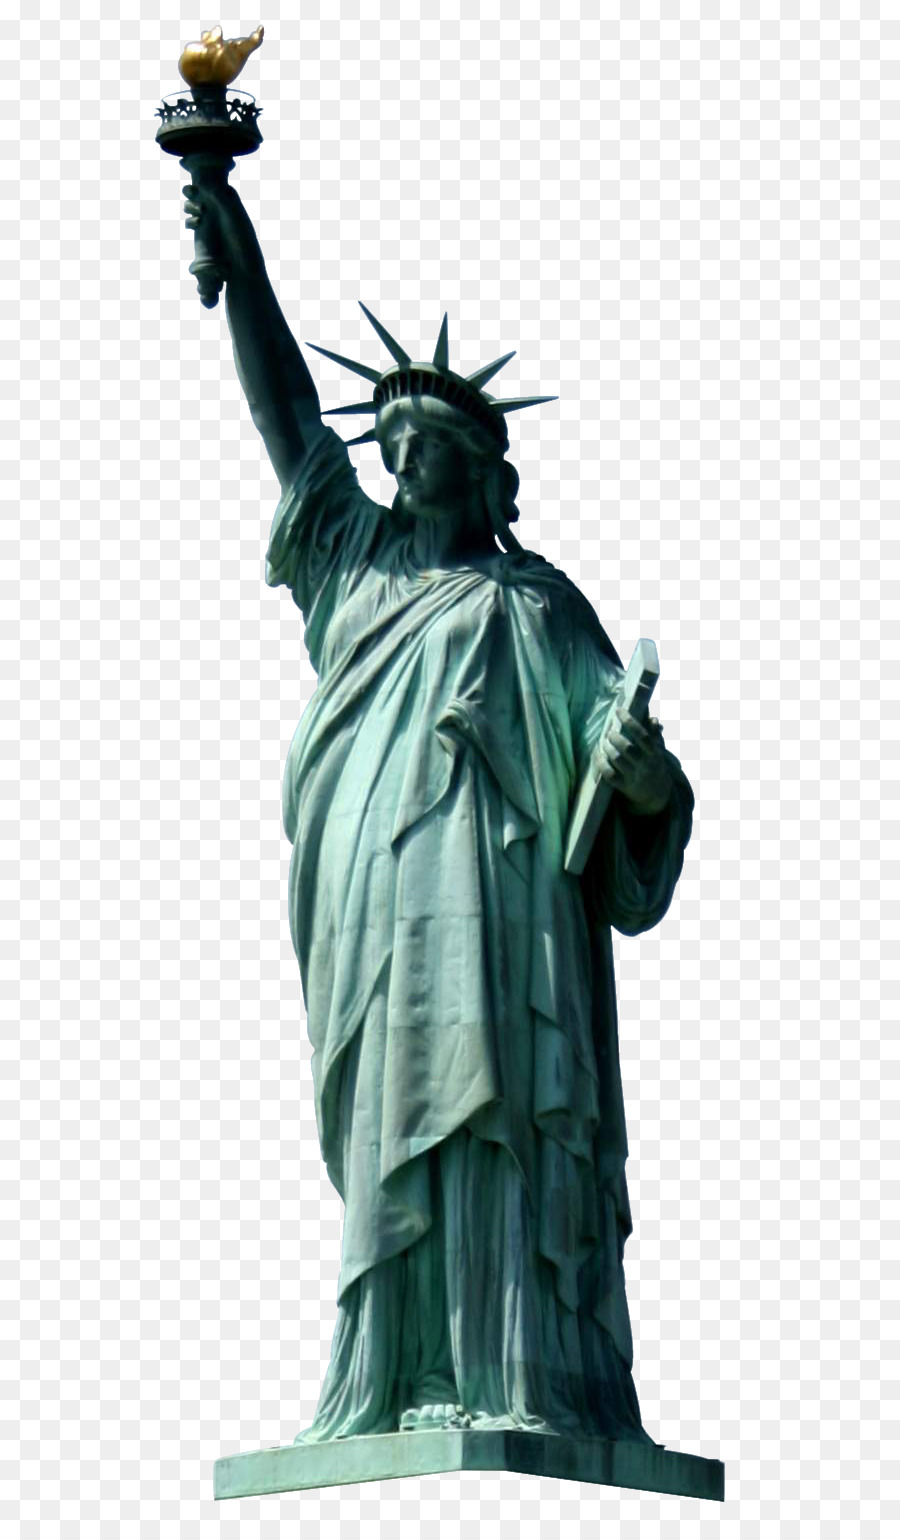 New York Statue Of Liberty Png & Free New York Statue Of.